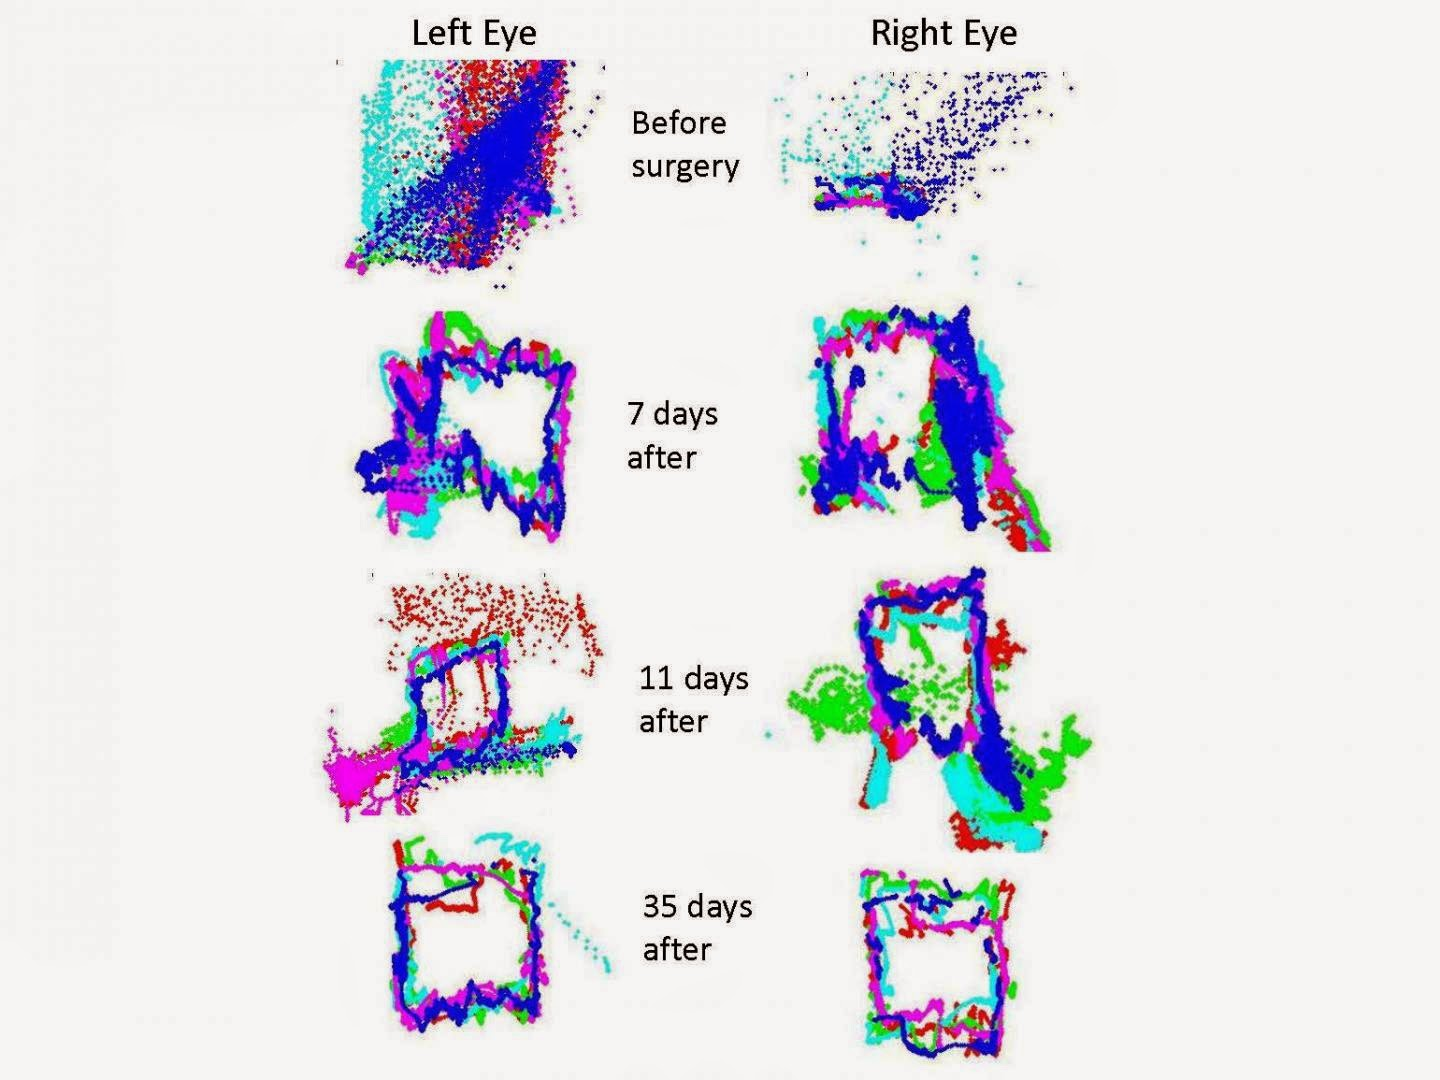 A veteran with a small skull fracture and bleeding on the surface of his brain had eye movements that were most intensely affected prior to surgery for repair (day 0). Vertical movements were decreased relative to horizontal movement. As the patient recovered over the next several weeks the eye movements gradually returned to near normal (day 35).